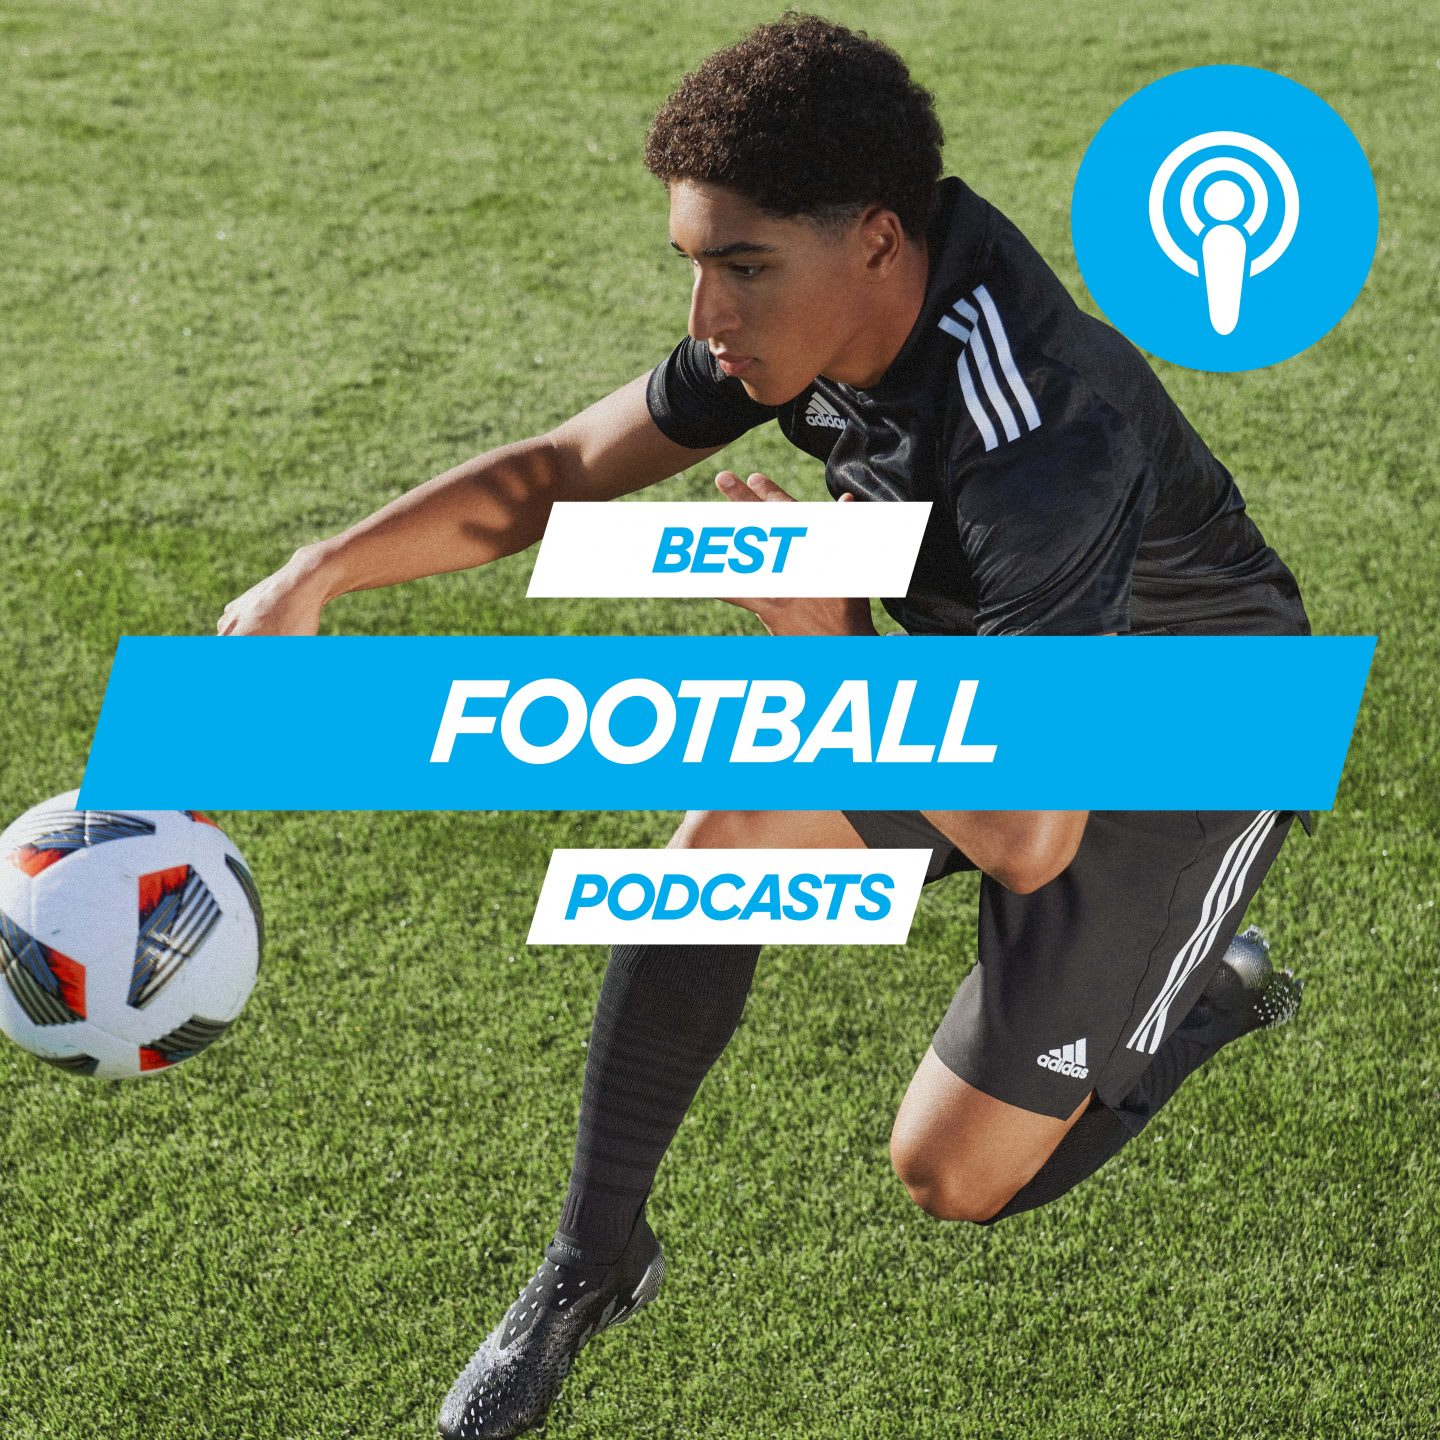 GamePlan A recommendations for best podcasts about football, listening, growth mindset, podcasts, corporate athlete